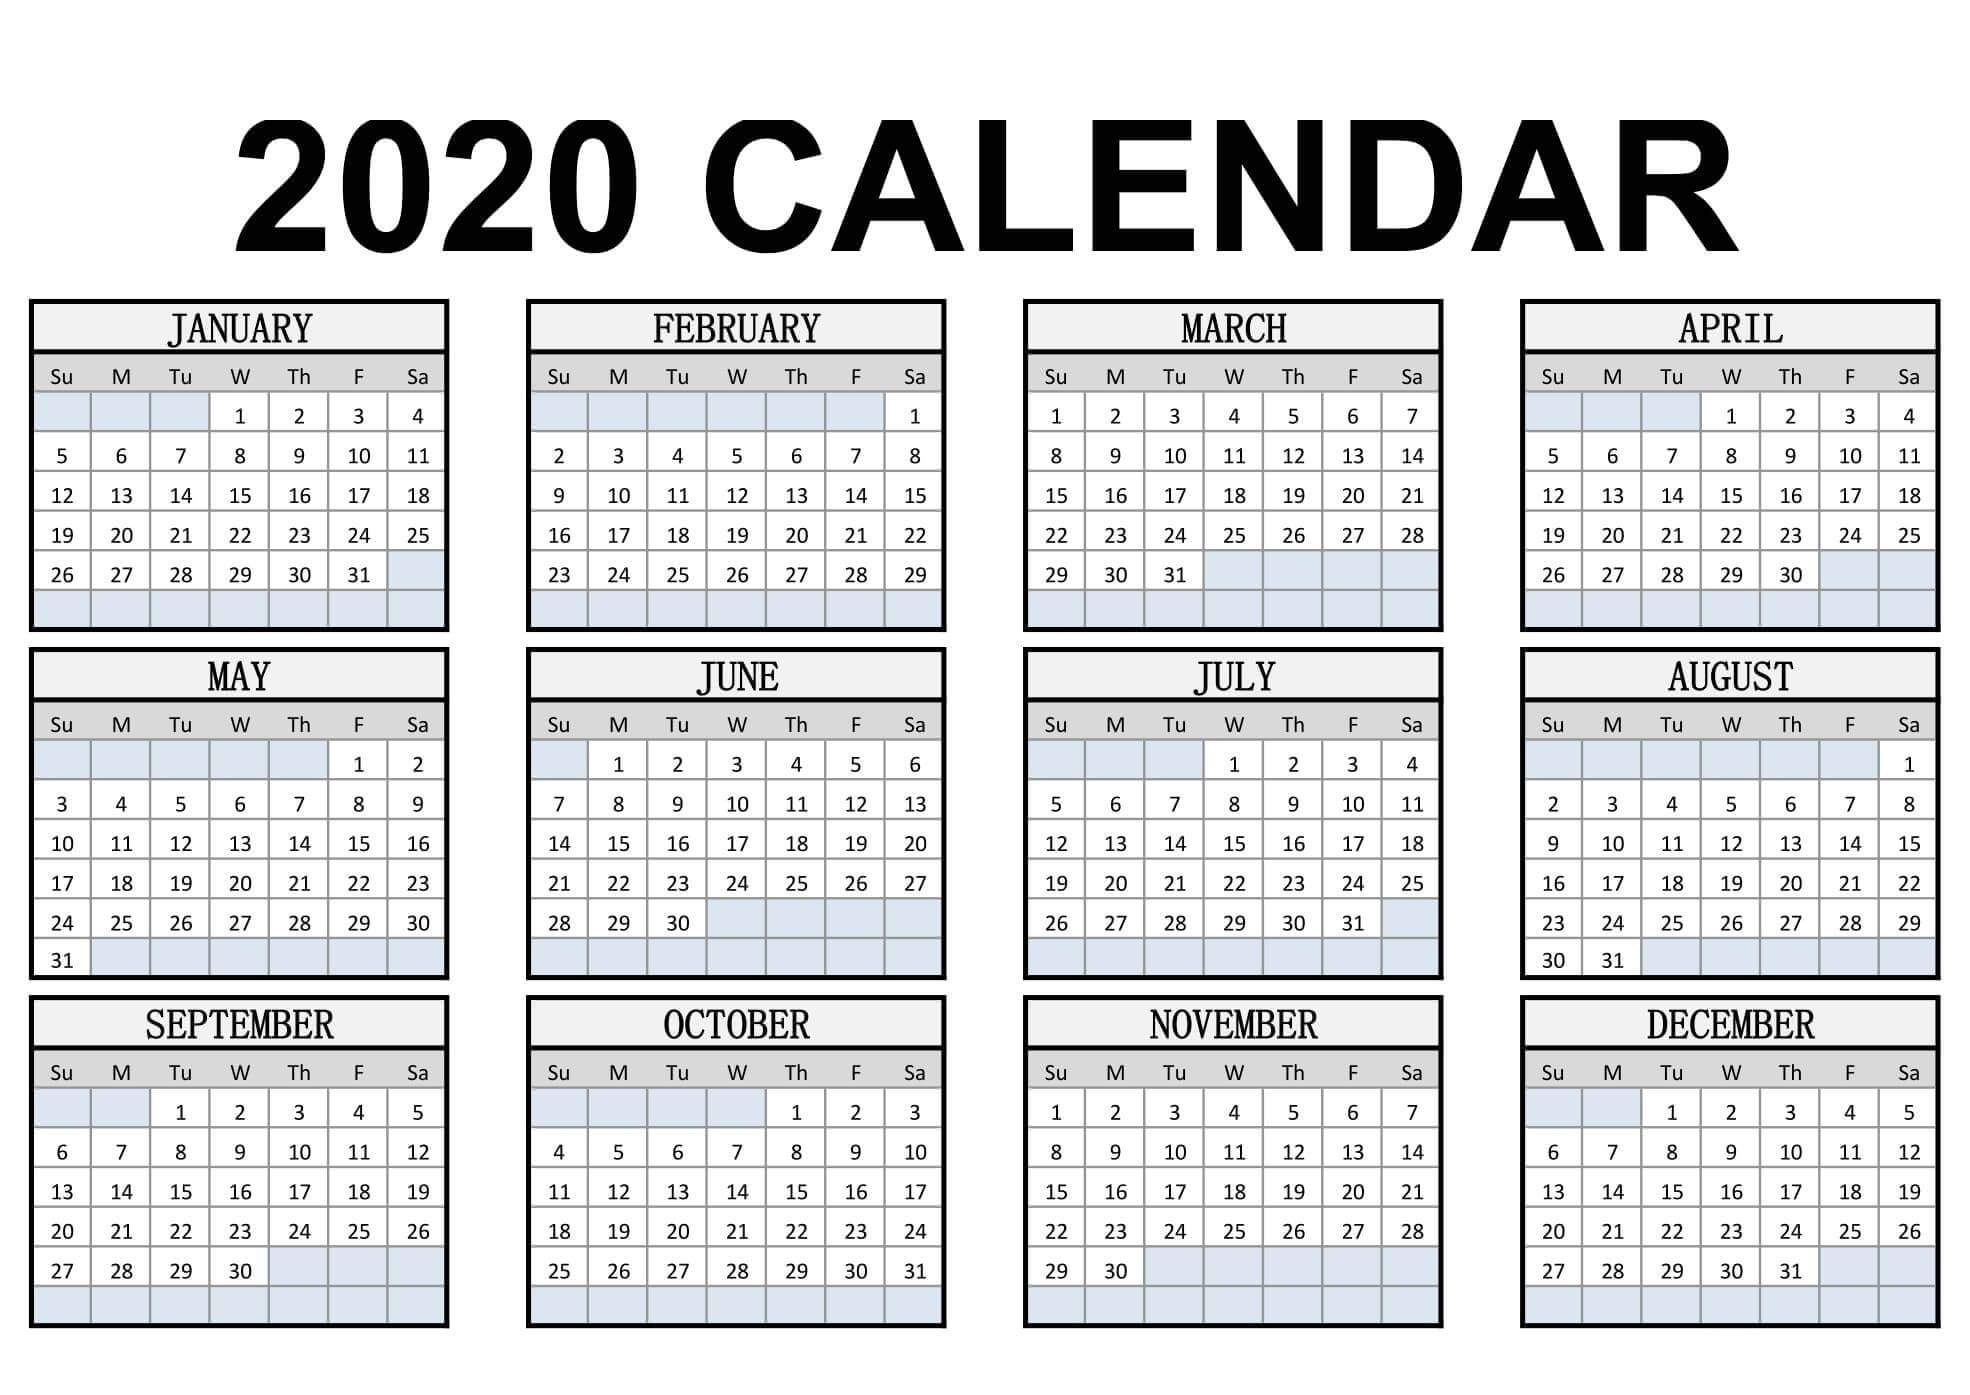 Calendar Year 2020 Holidays Template - 2019 Calendars For Perky Year Calendar 2020 Printable